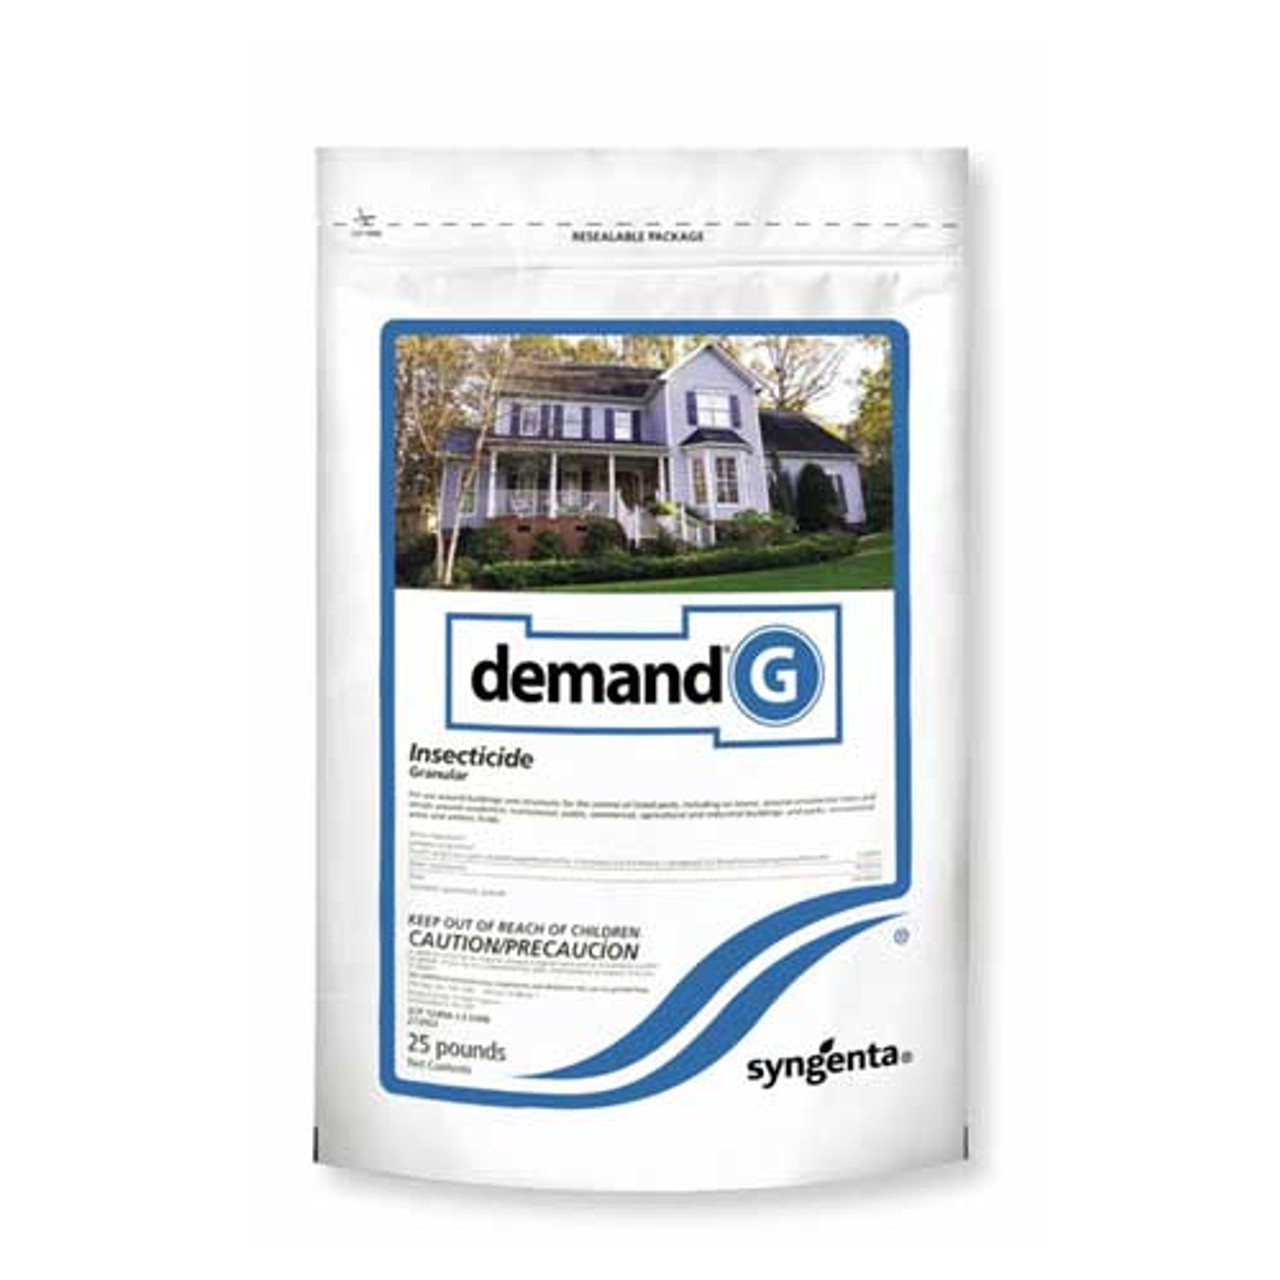 Demand G Insecticide Granular